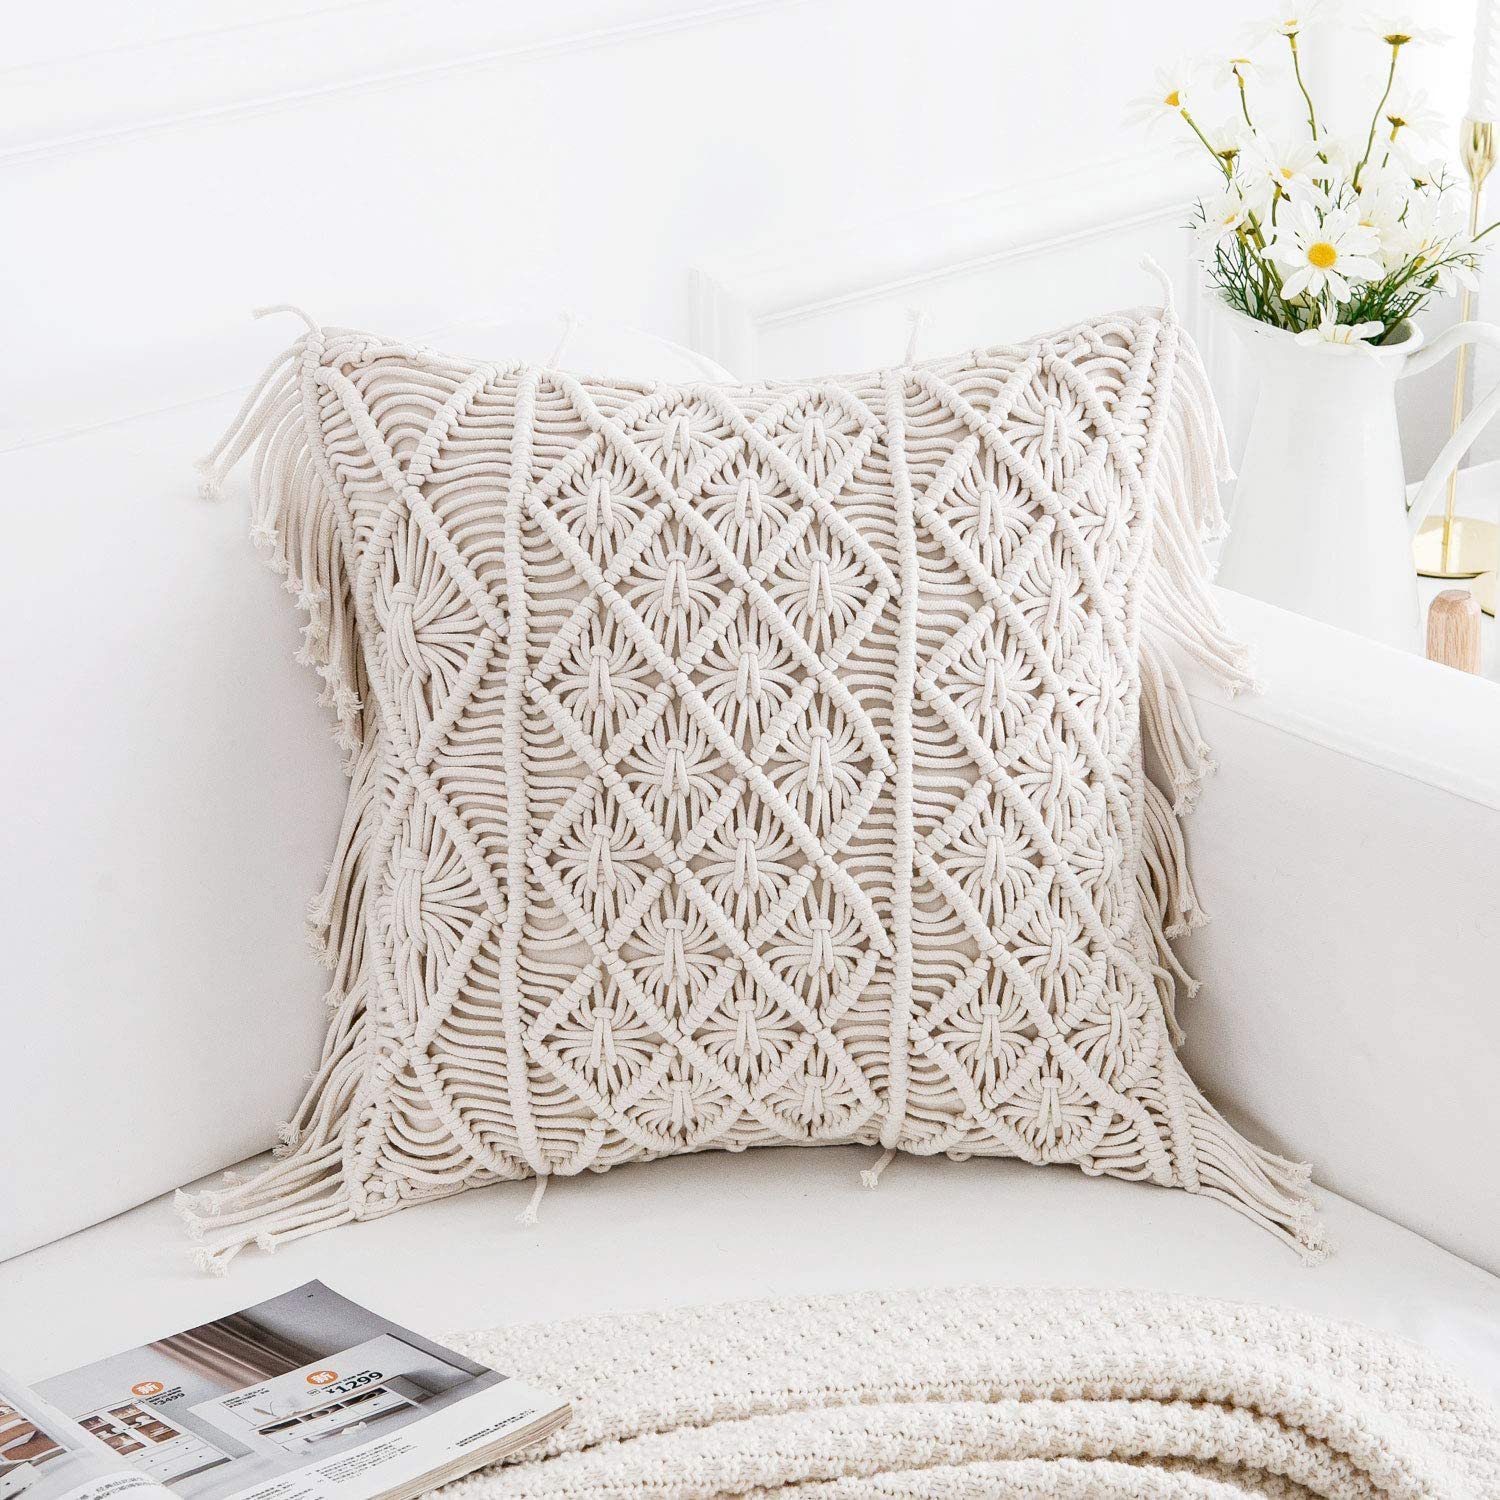 famibay Throw Pillow Covers Knit Chic Boho